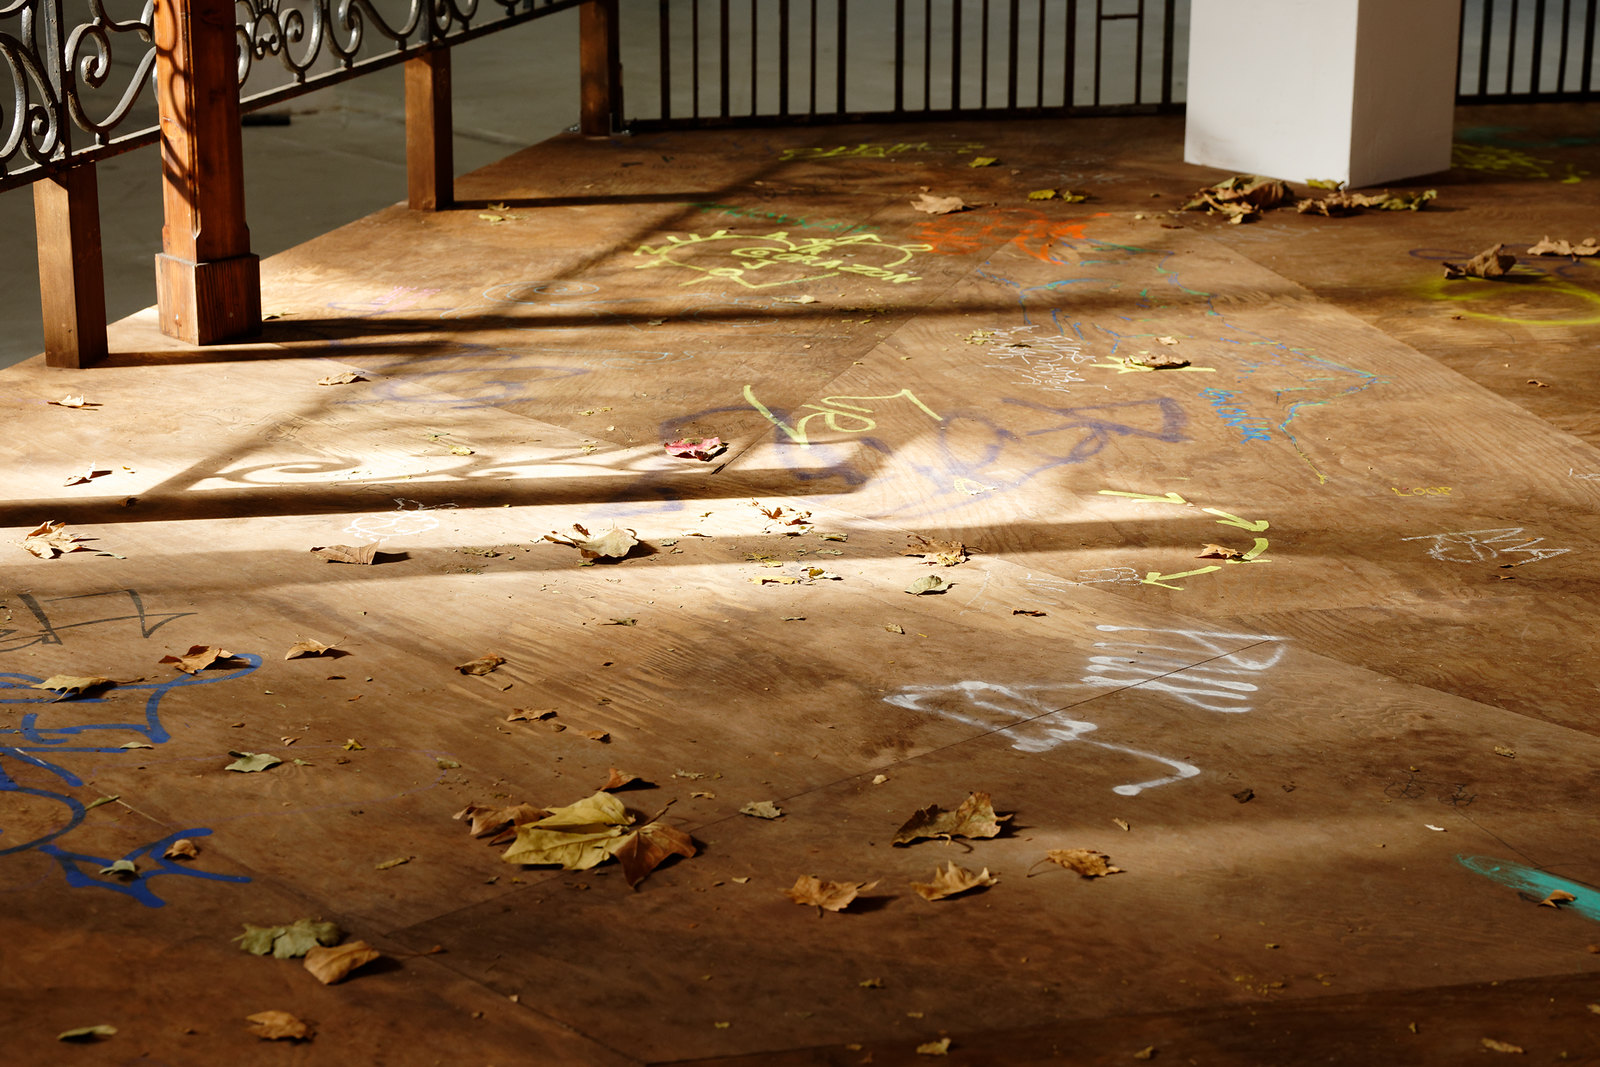 The floor of the kiosk which is strewn with autumn leaves and graffiti